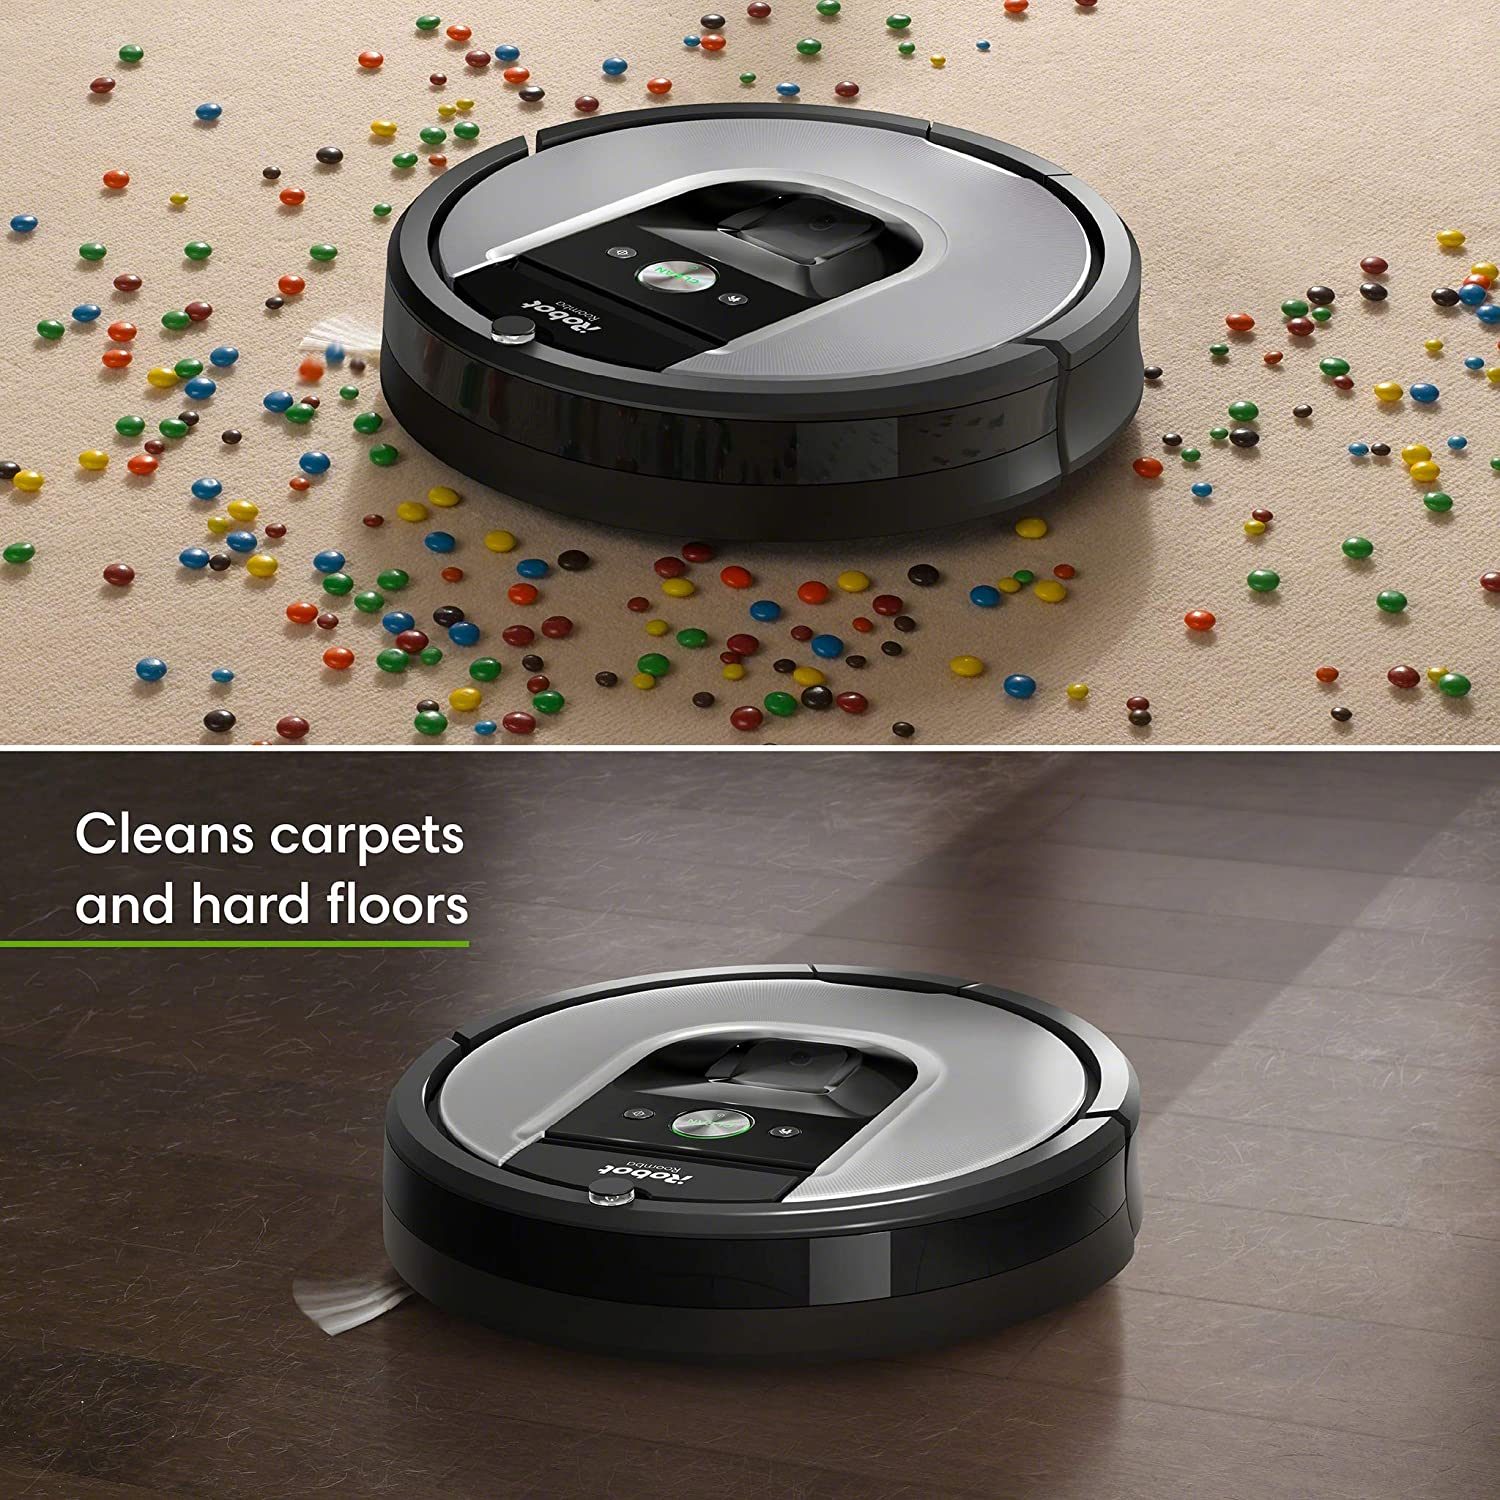 Go for the iRobot Roomba 960 if you prefer the upgraded features